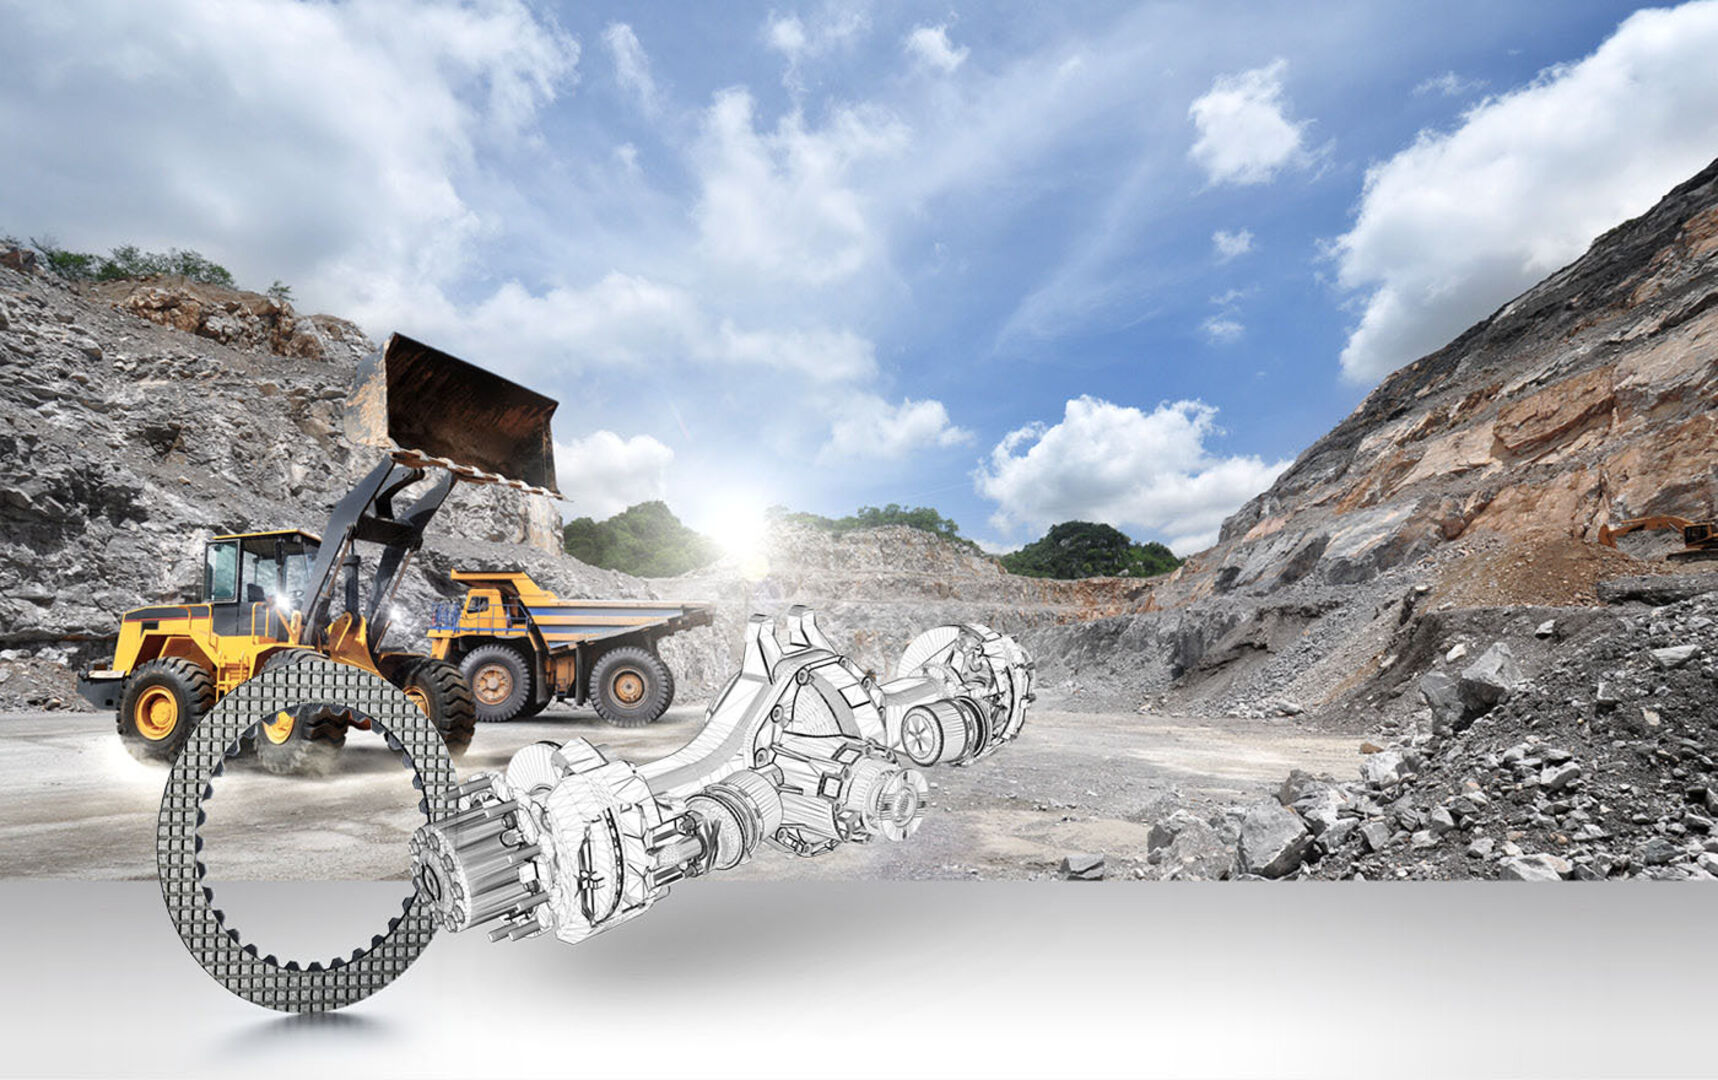 Image shows mining truck and excavator in the background and friction material part in the front